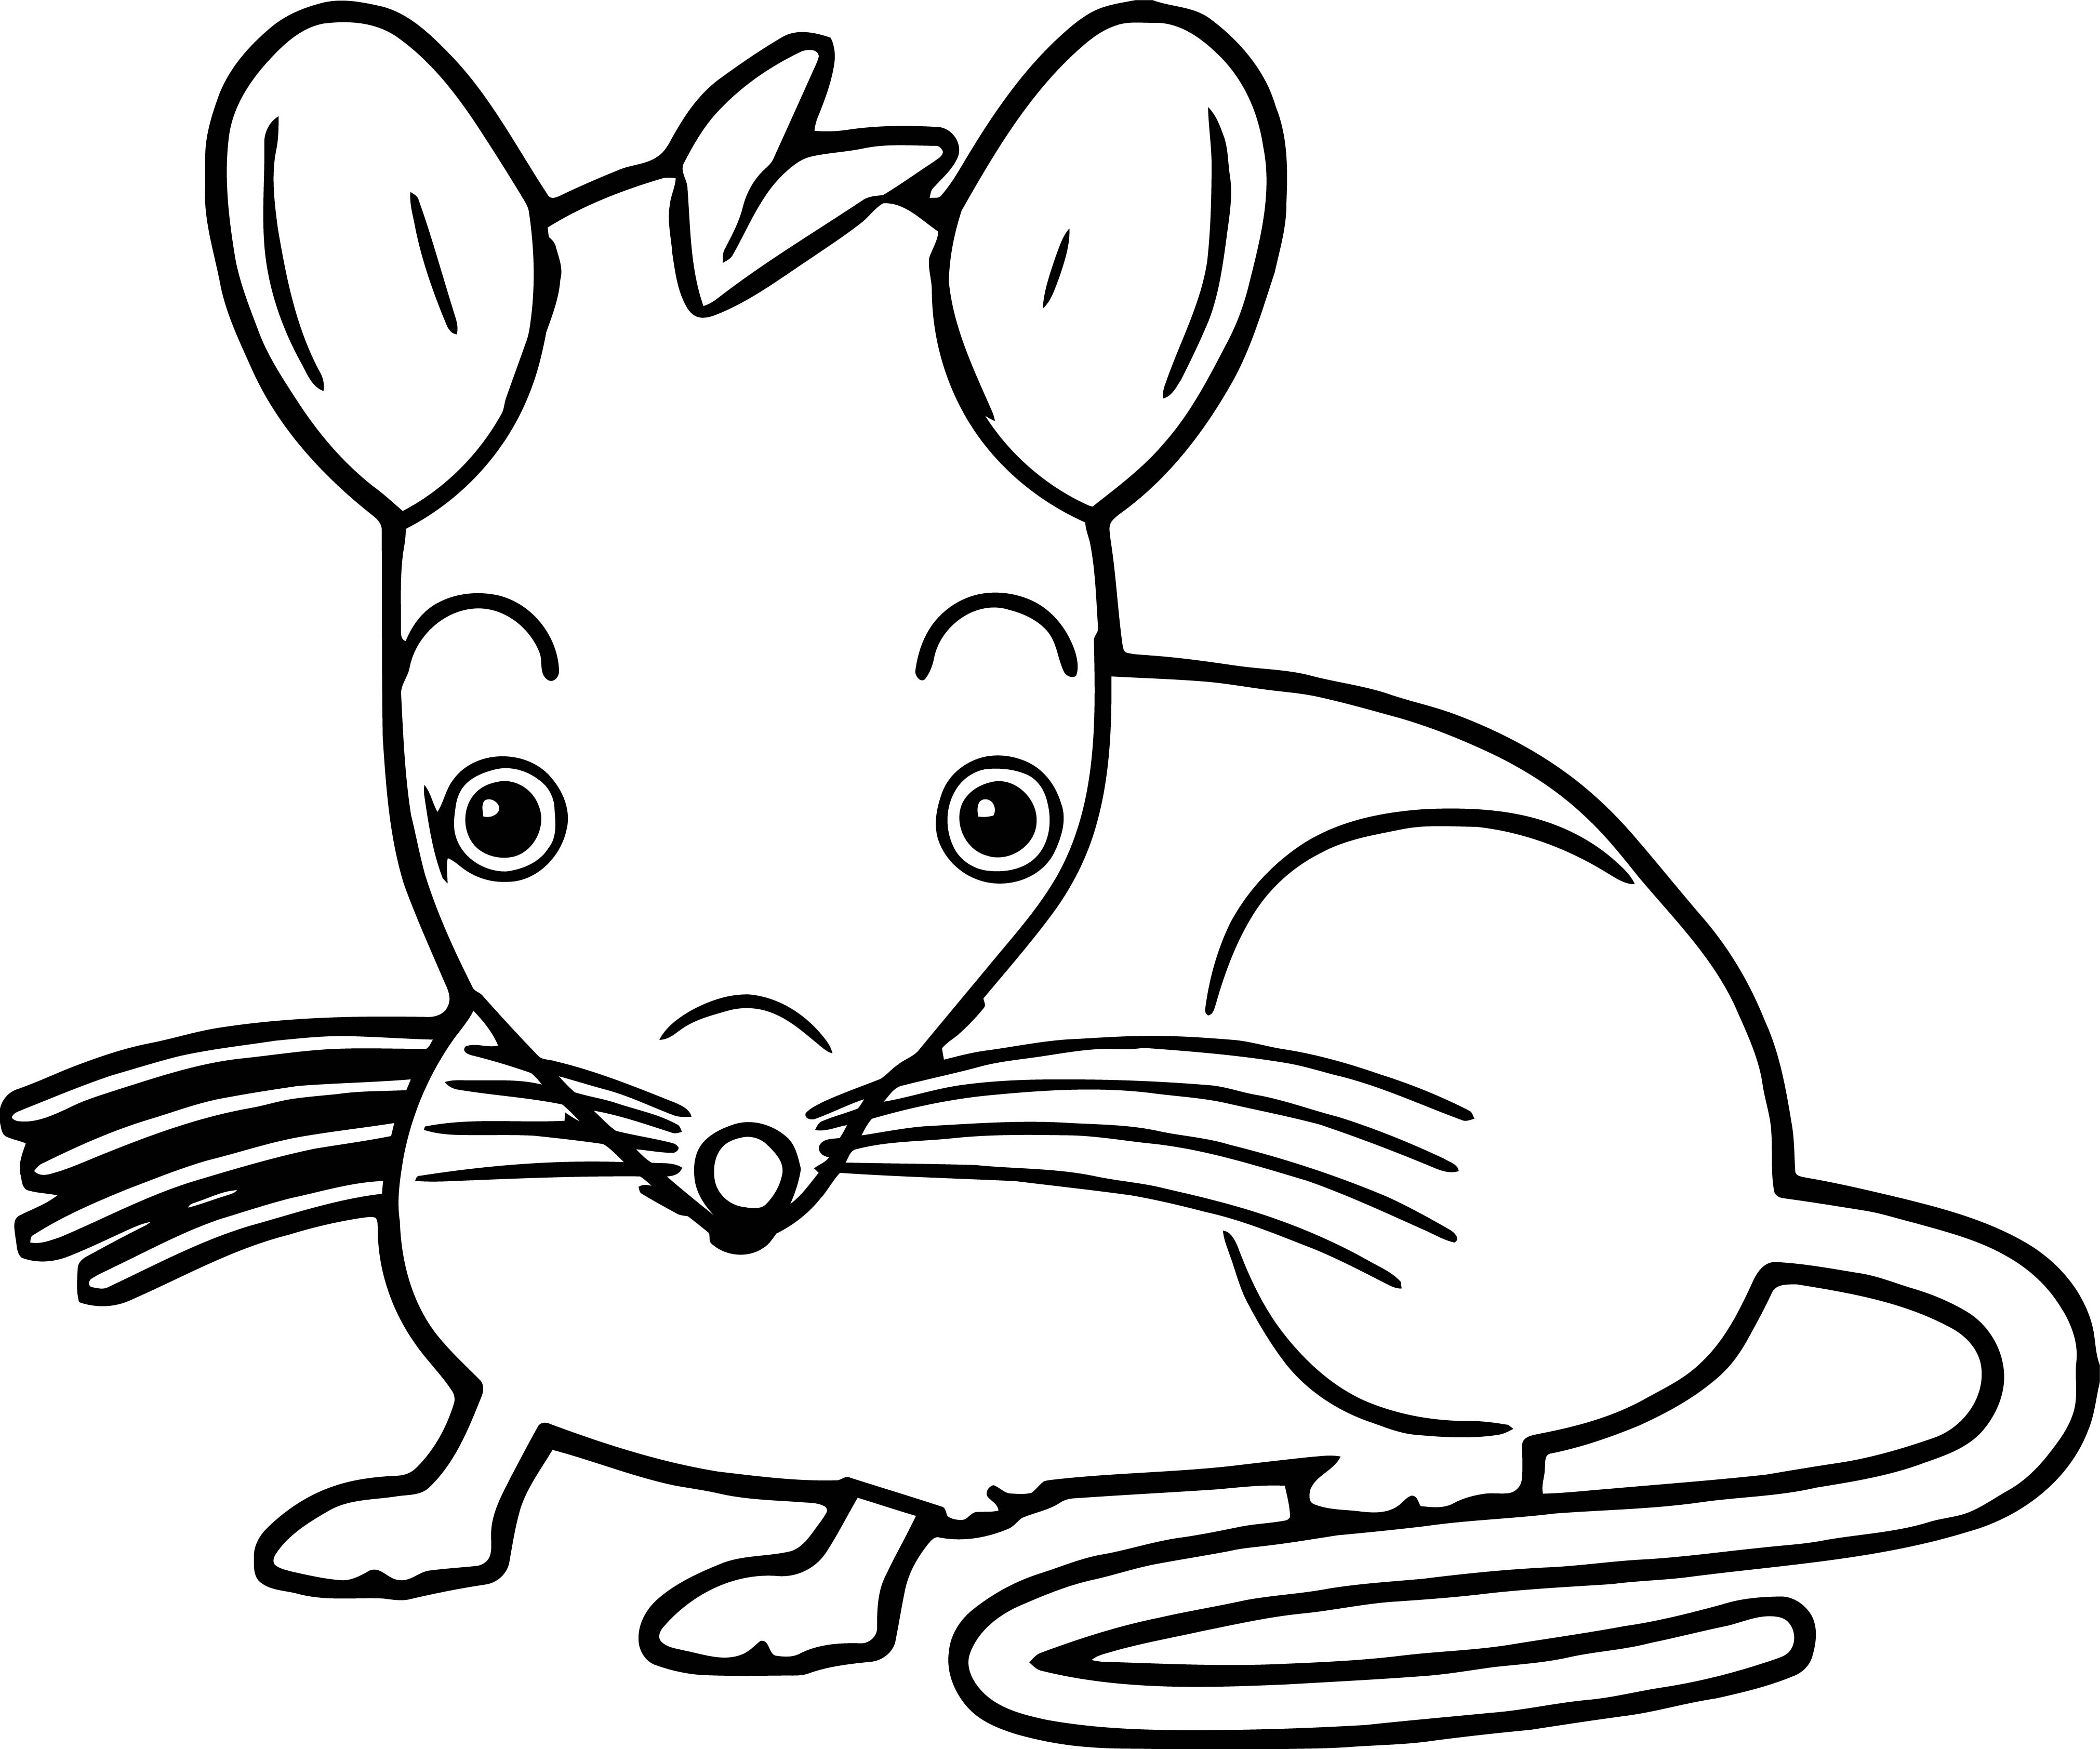 Mouse Jpeg Coloring Page 08